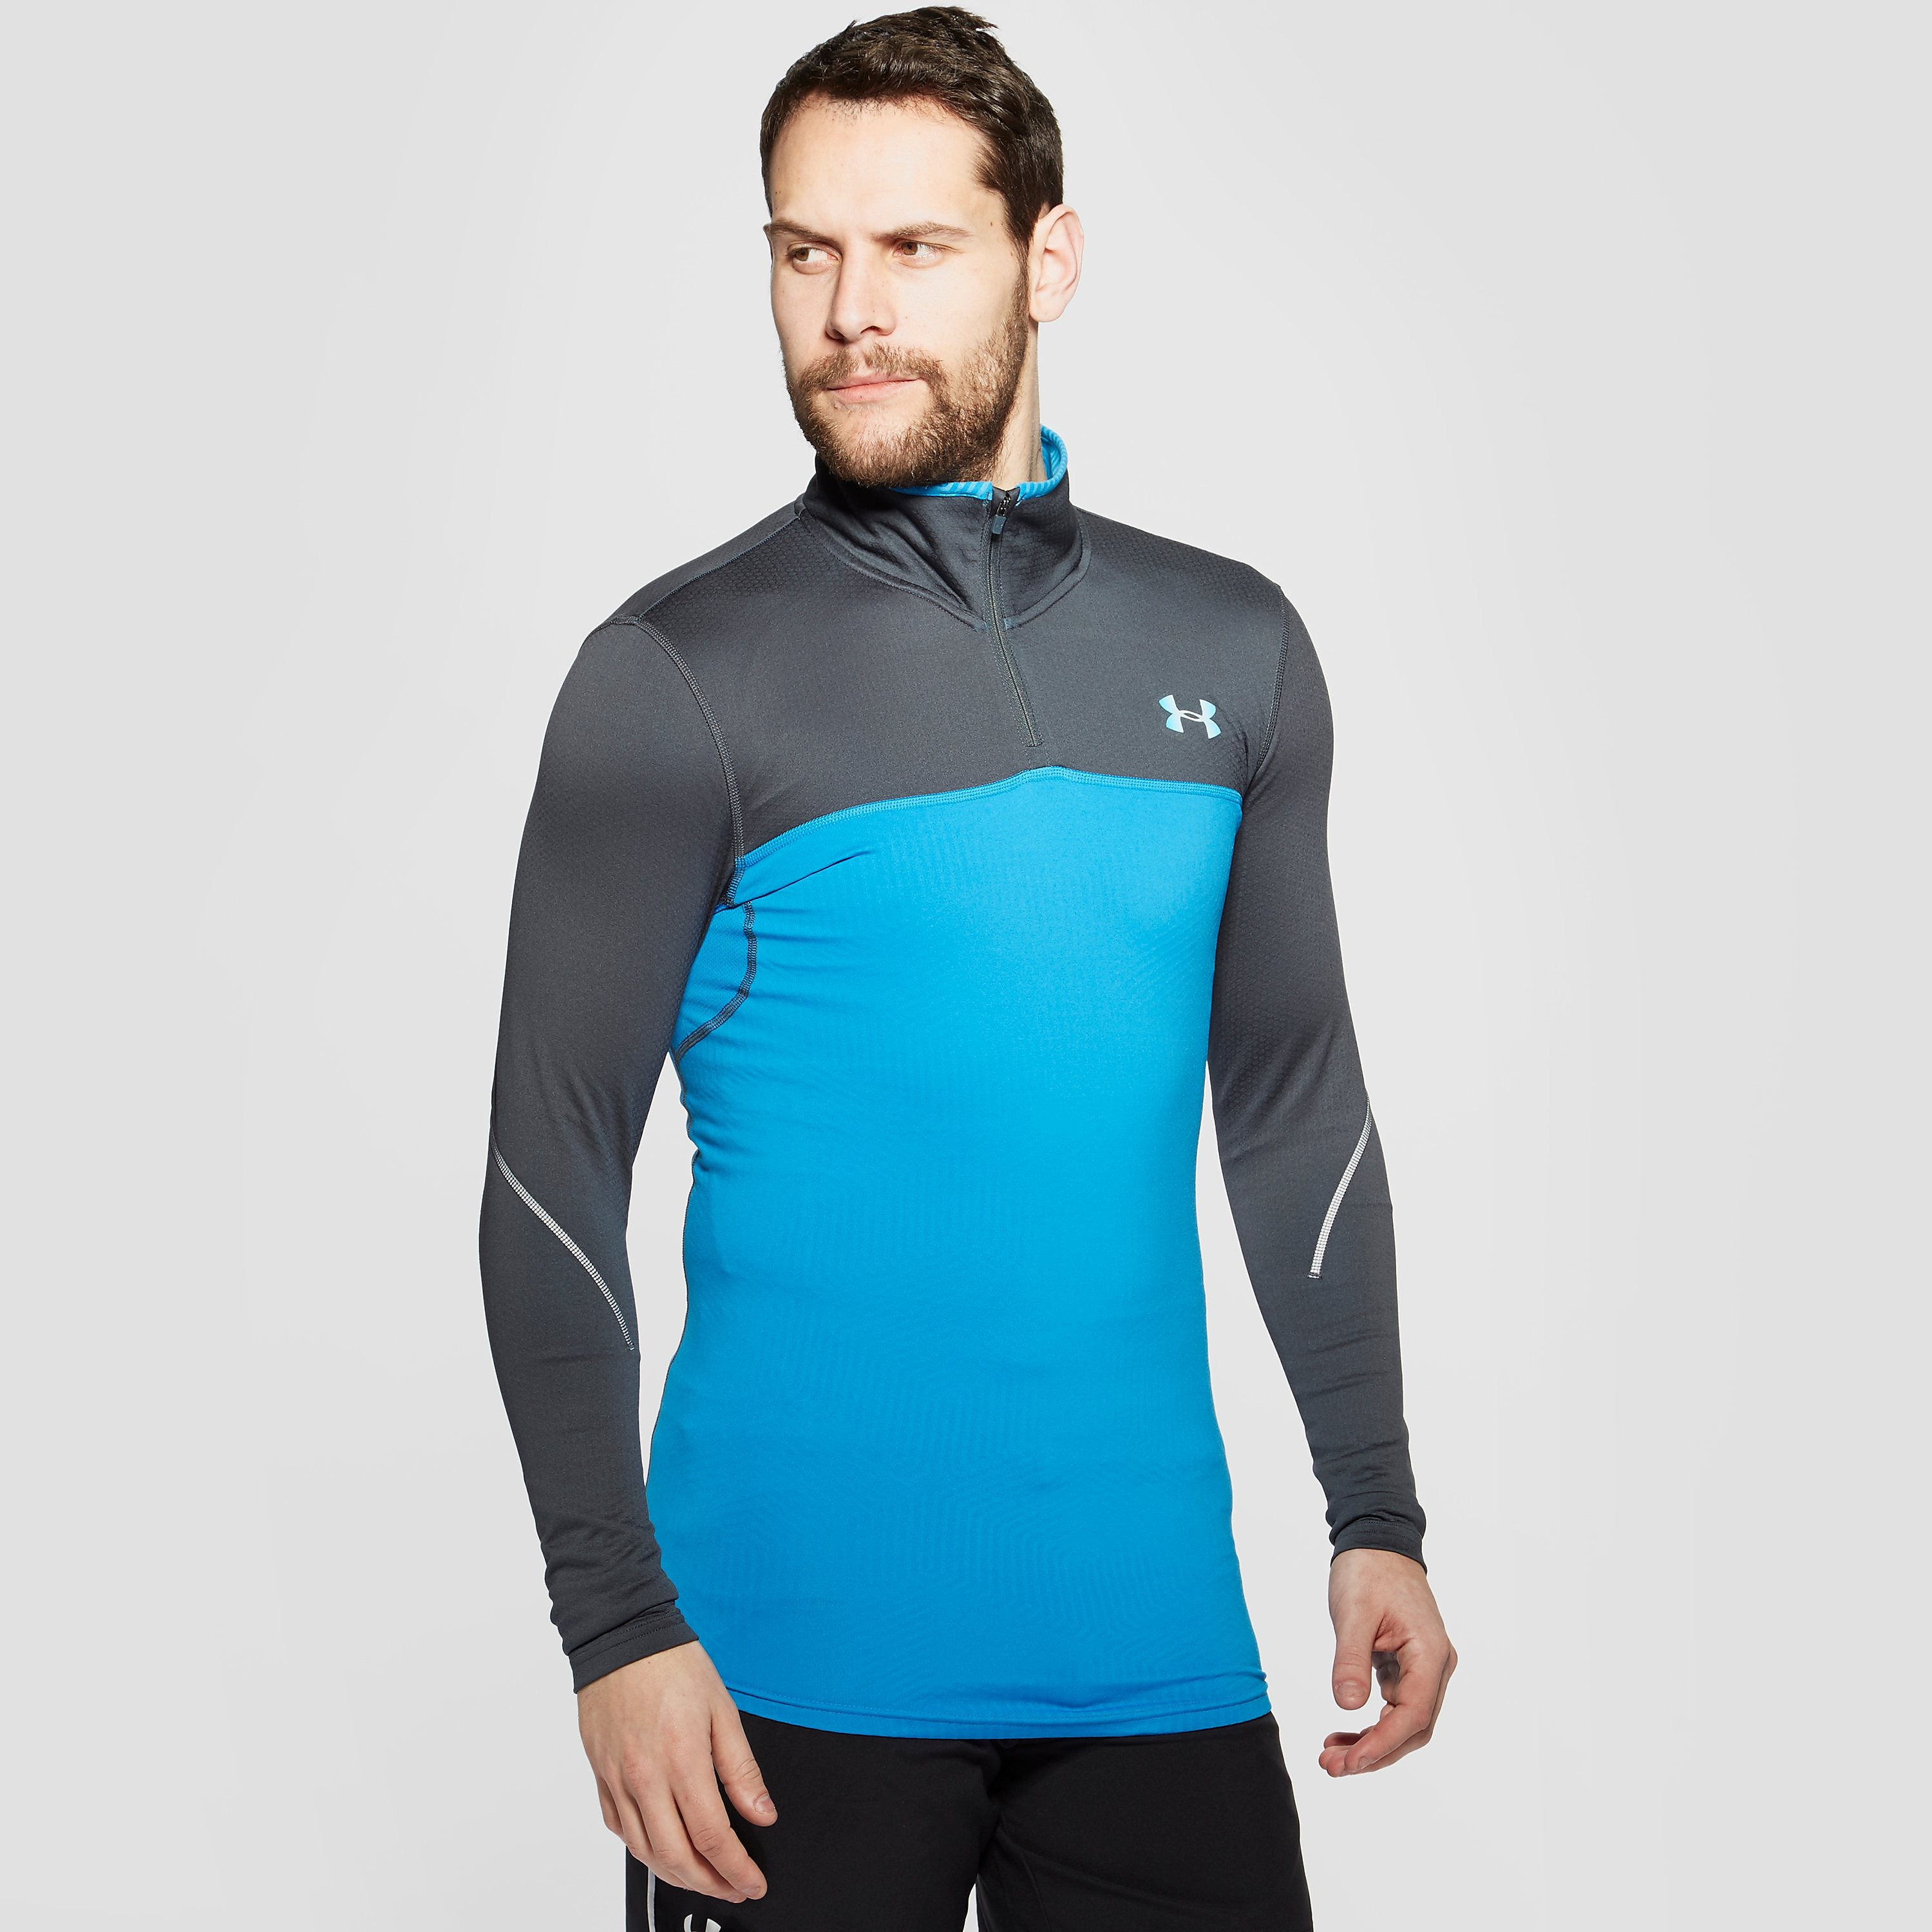 Under Armour ColdGear Elements 1/4 Zip Men's Top